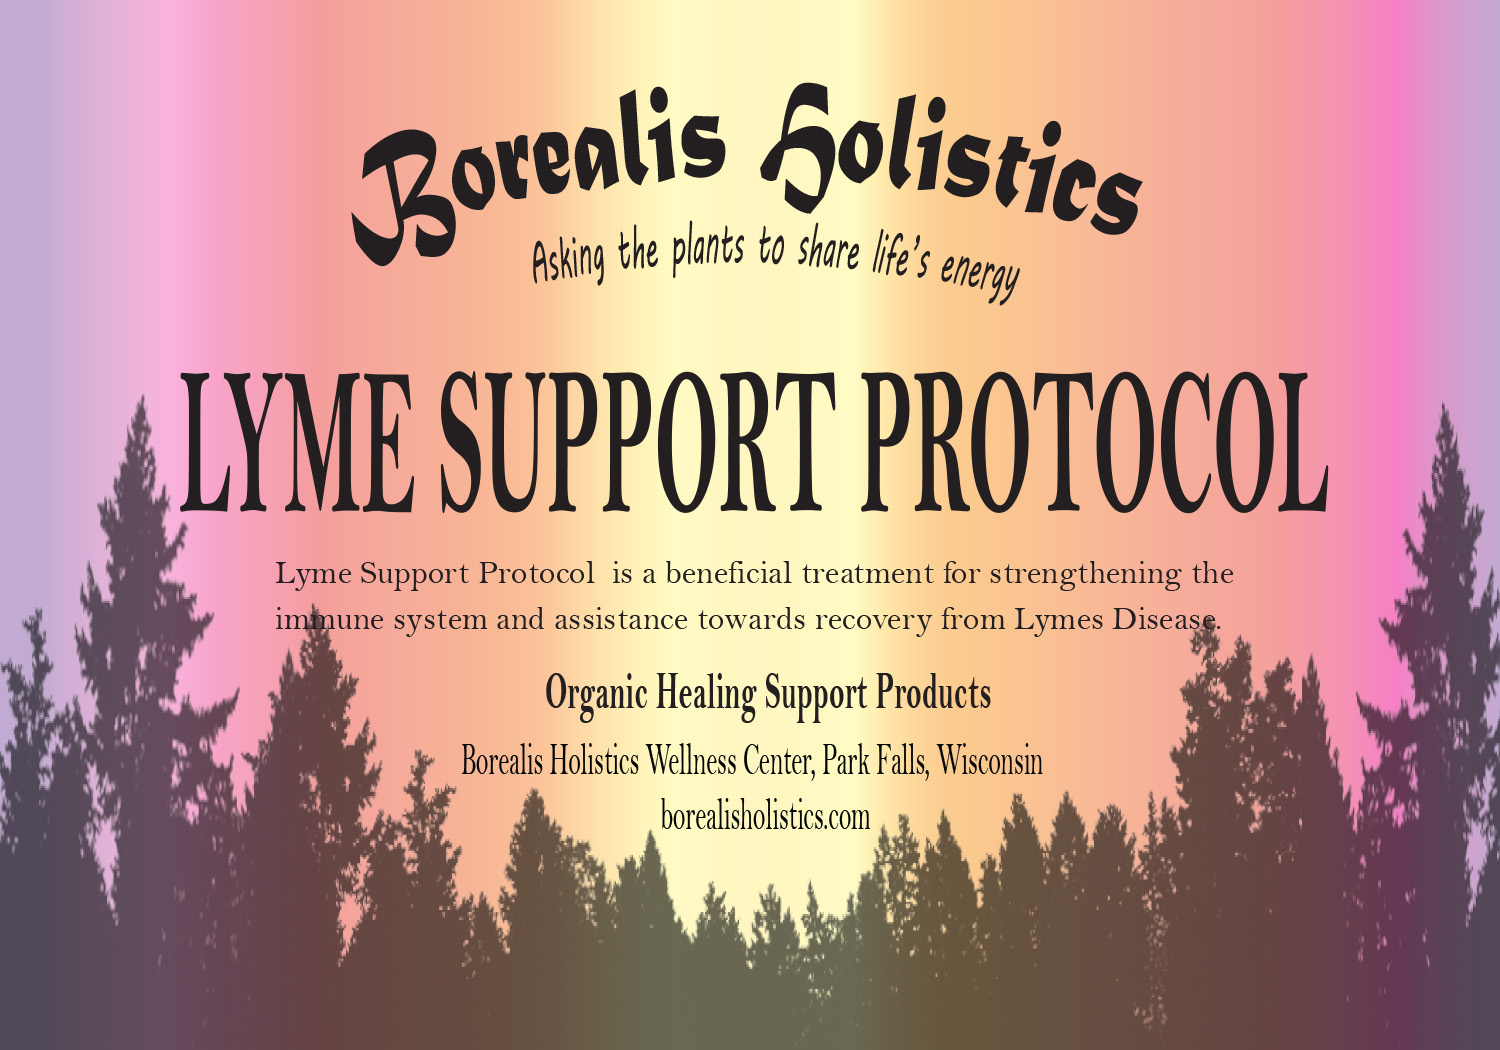 Lyme Support Protocol